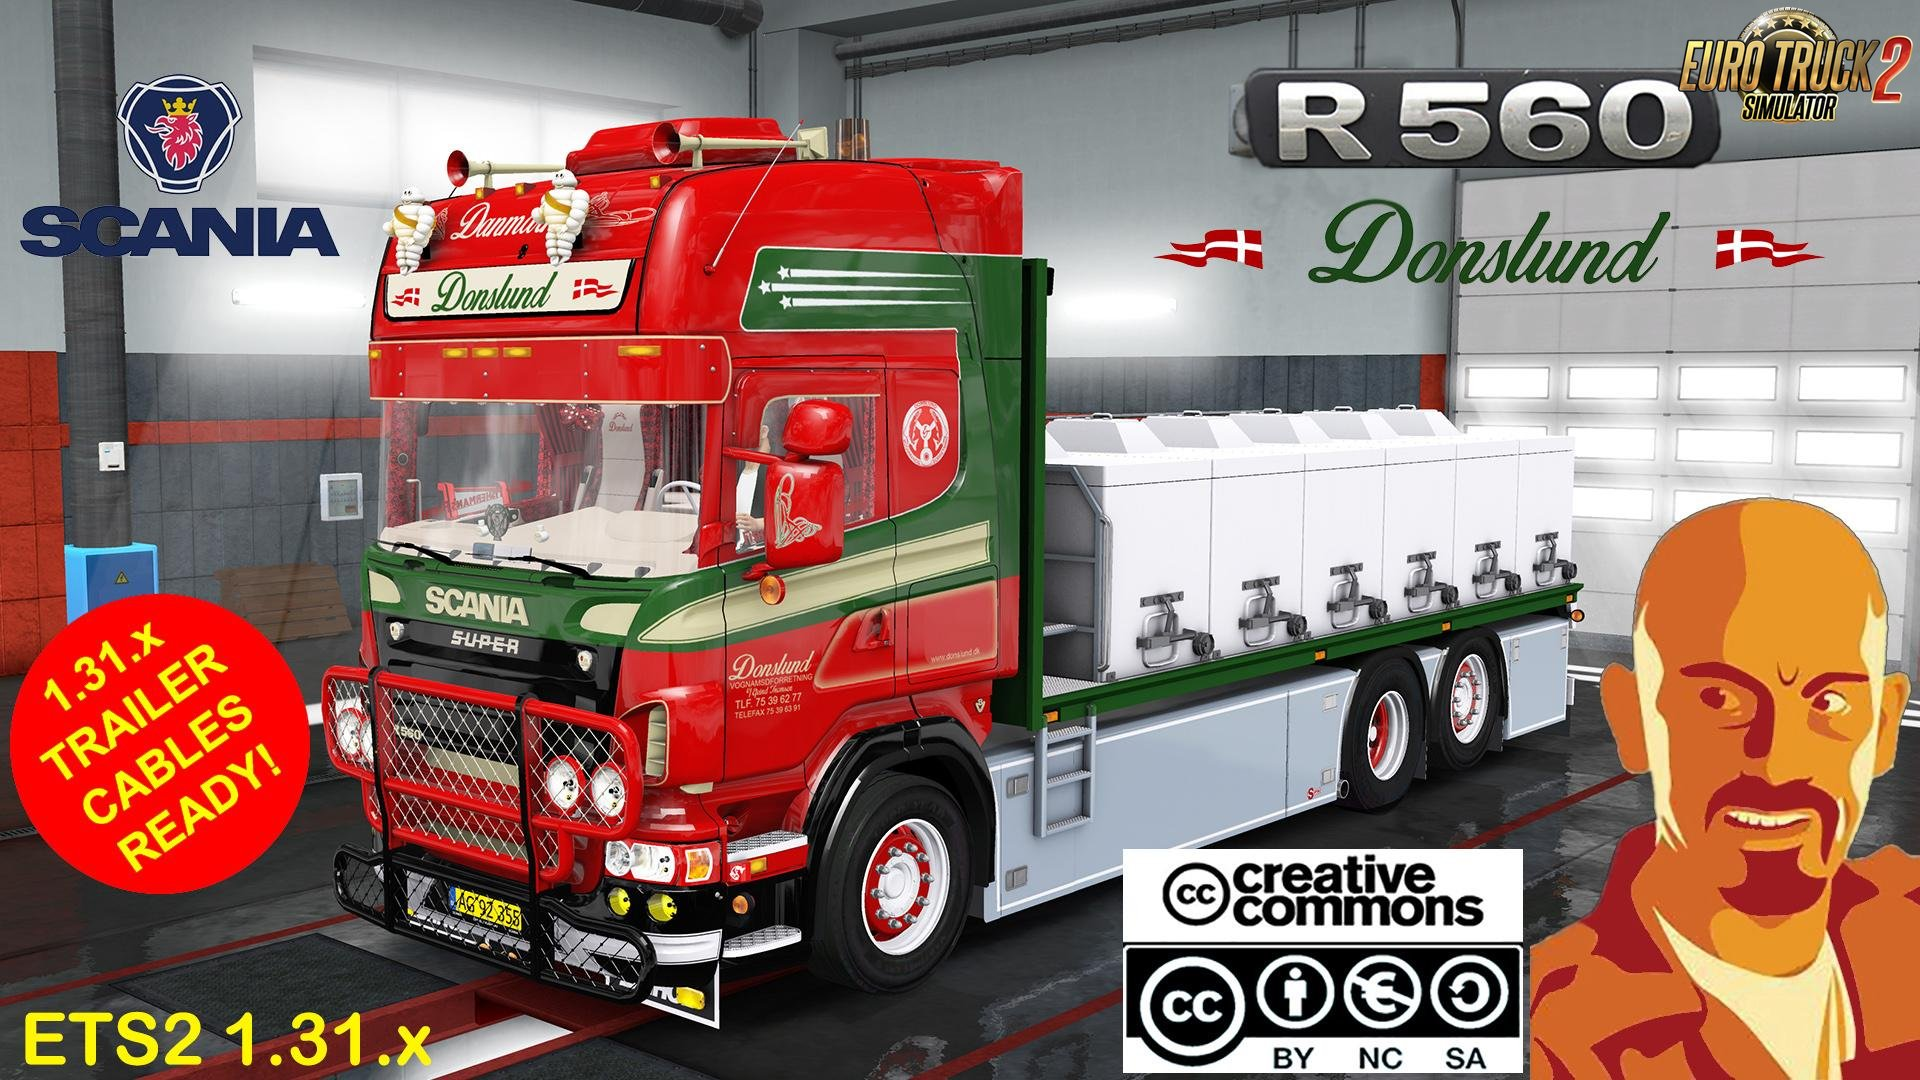 Fixed Lights for Scania R560 Donslund + Trailer (Recovered) for Ets2